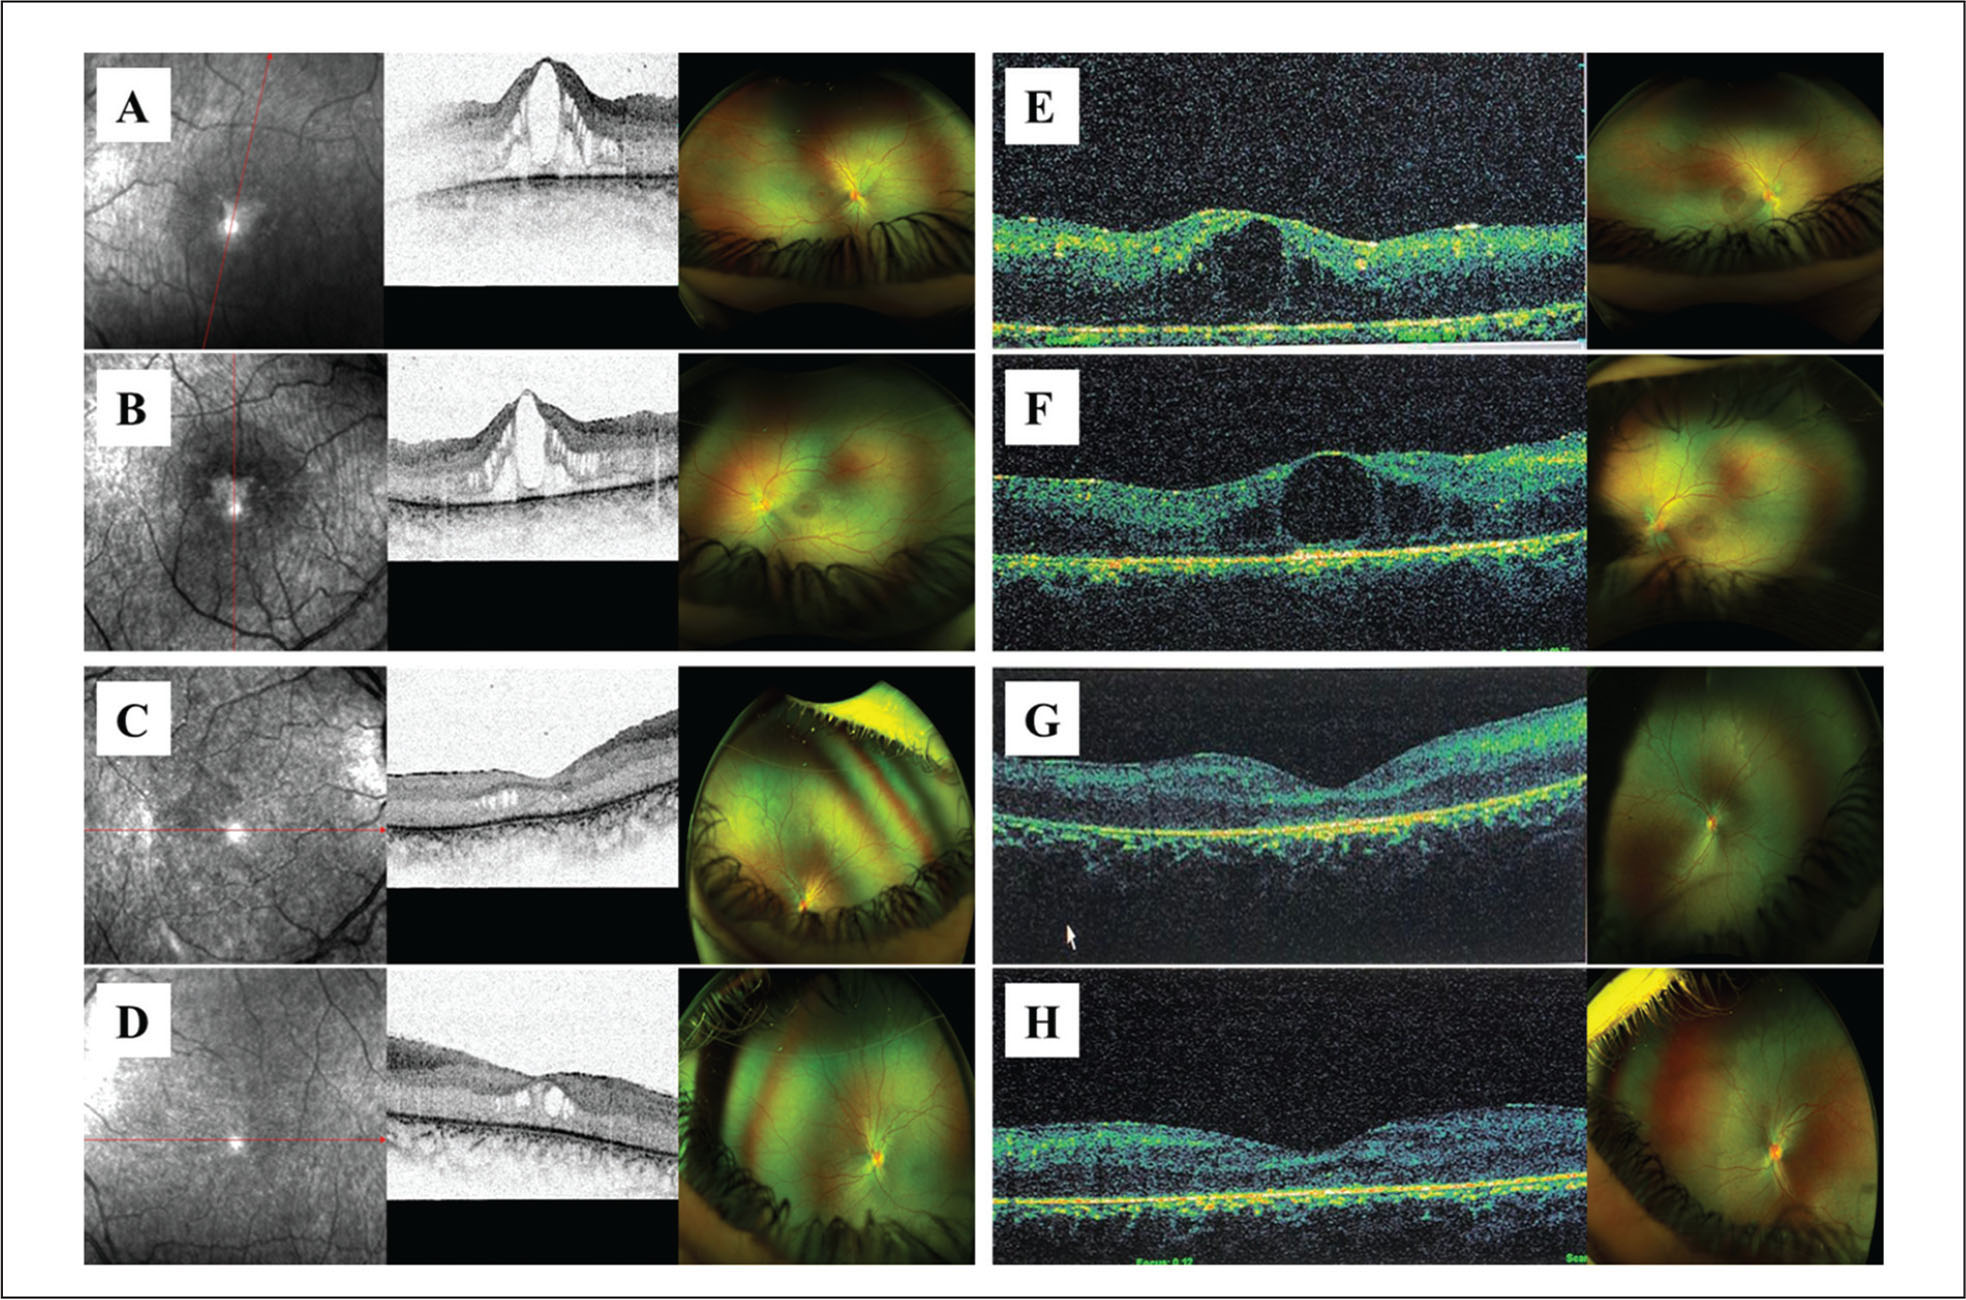 Fundus examination and optical coherence tomography (OCT) at first evaluation, when the two dizygotic twins were (left side: A, B, C, and D) 3 years old and (right side: E, F, G, and H) at the 4-year follow-up examination. The boy showed macular cystoid edema in the (A) right and (B) left eyes. Fundus examination and OCT of the girl also showed macular cystoid edema in the (C) right and (D) left eyes, although less pronounced than in the boy. At the follow-up evaluation, fundus examination and OCT showed a different evolution of the disease in the twins. Indeed, edema persisted in both the (E) right and (F) left eyes of the boy, whereas the girl showed an atrophic evolution of the foveal region in both eyes (G and H, right and left eye, respectively).